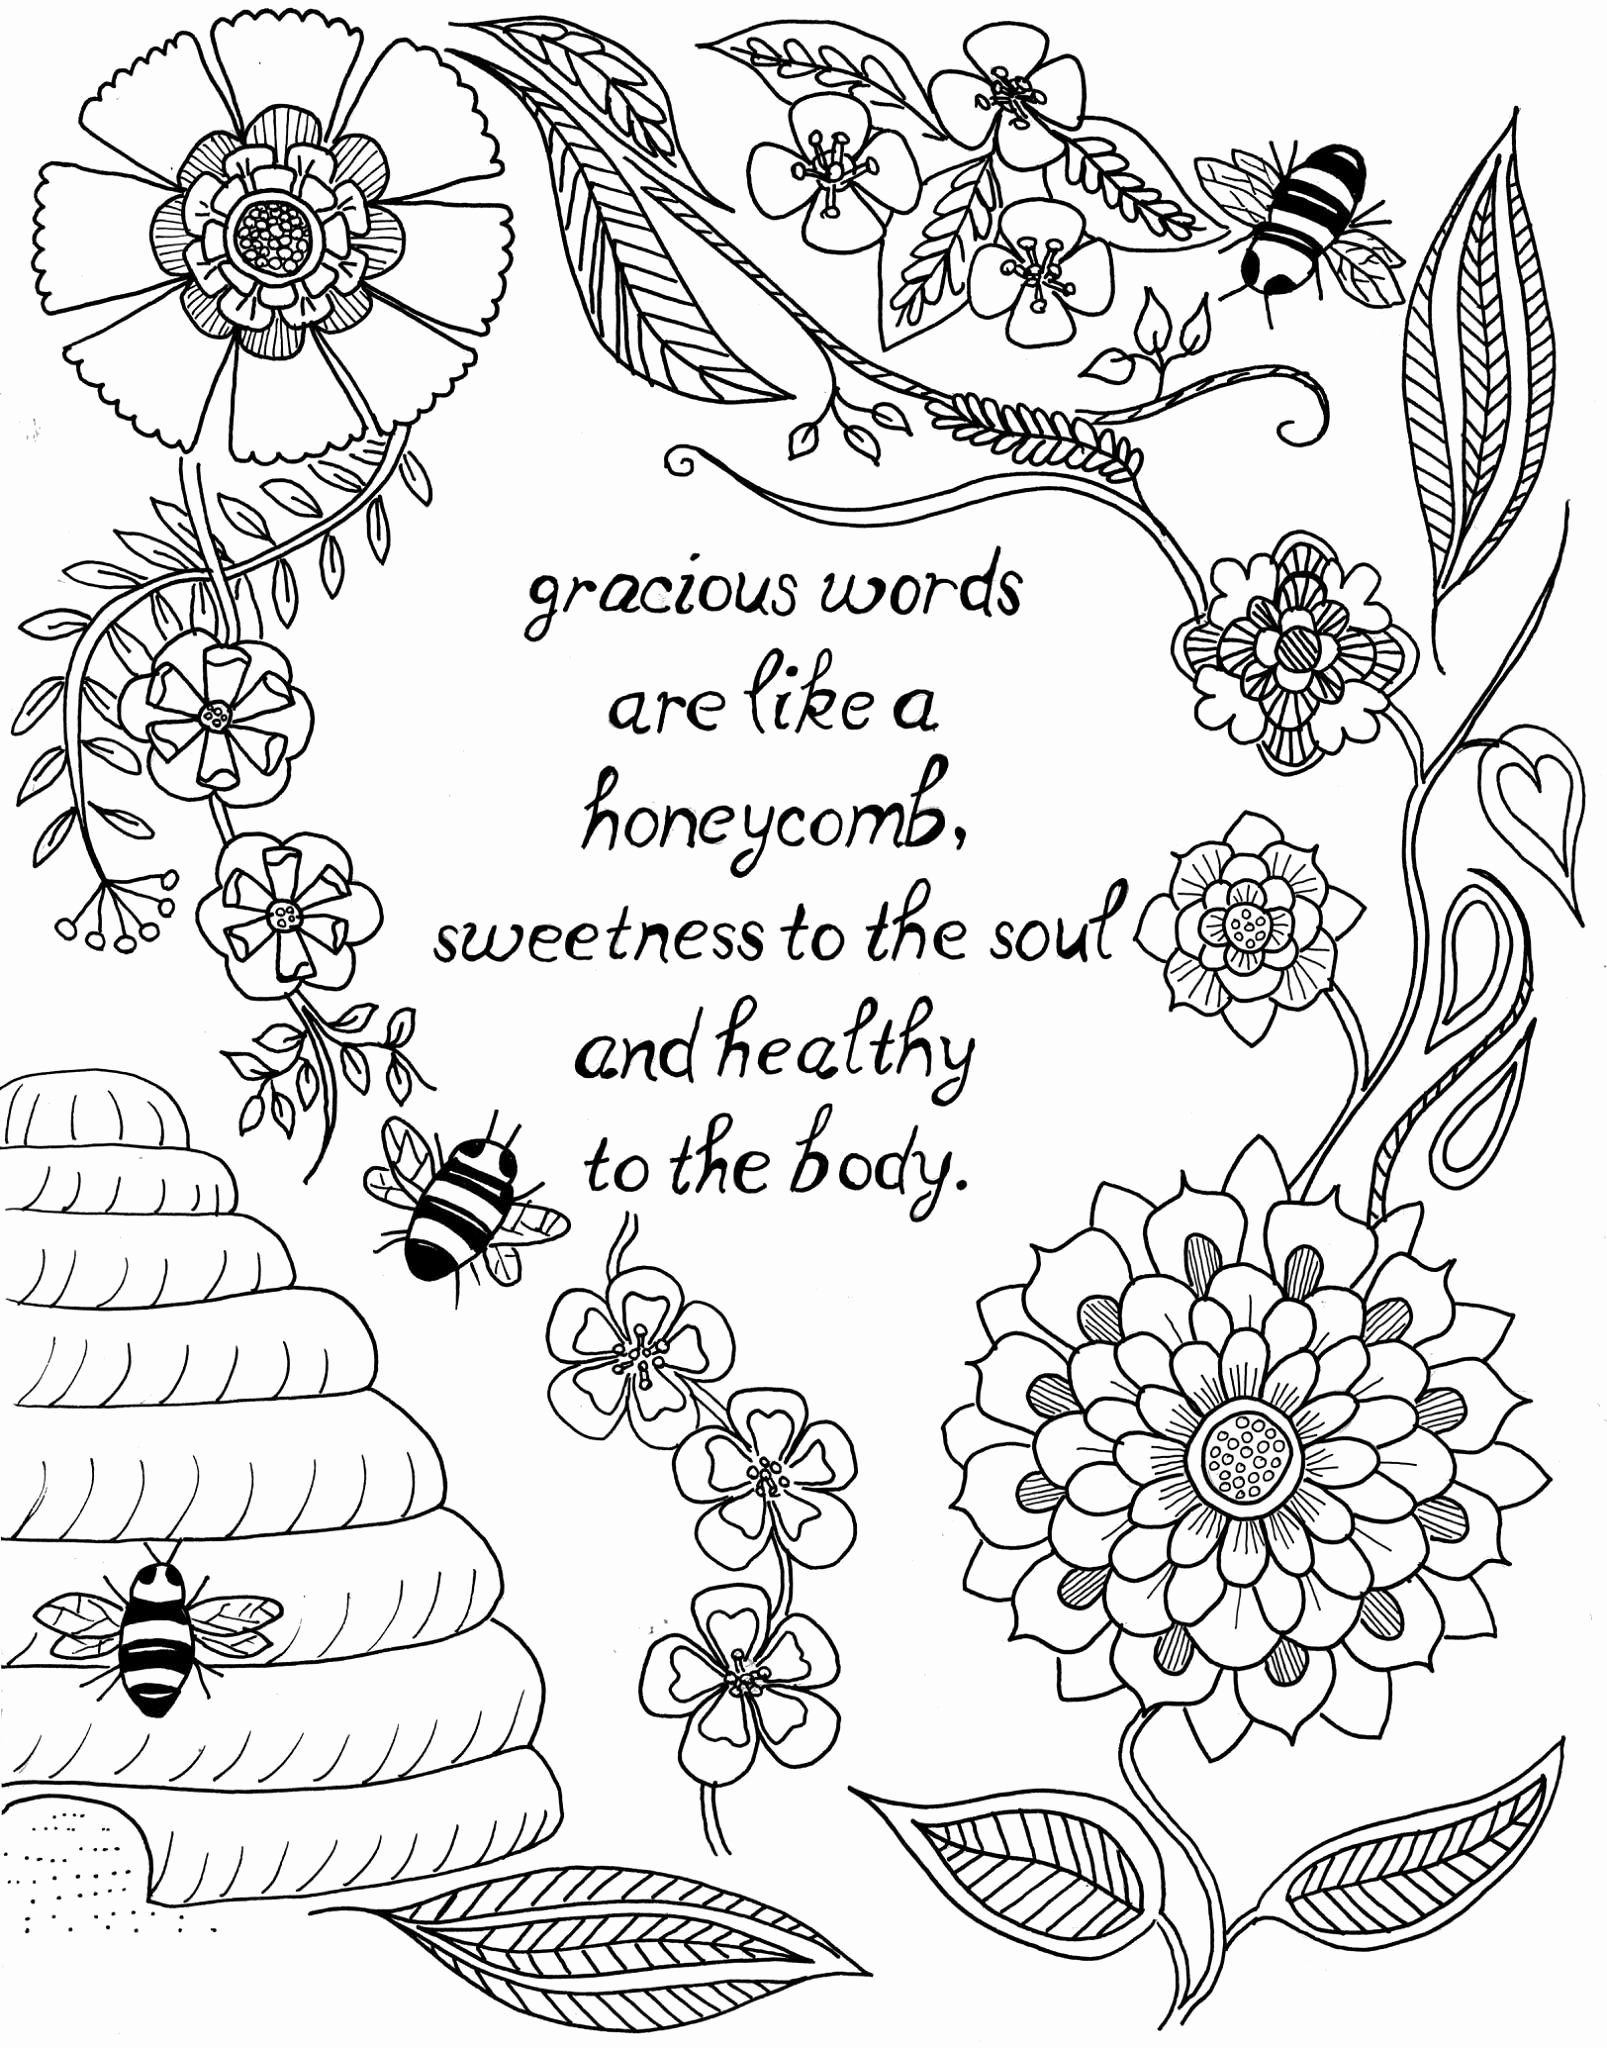 Coloring Sheets For Adults Pdf In 2020 Coloring Pages